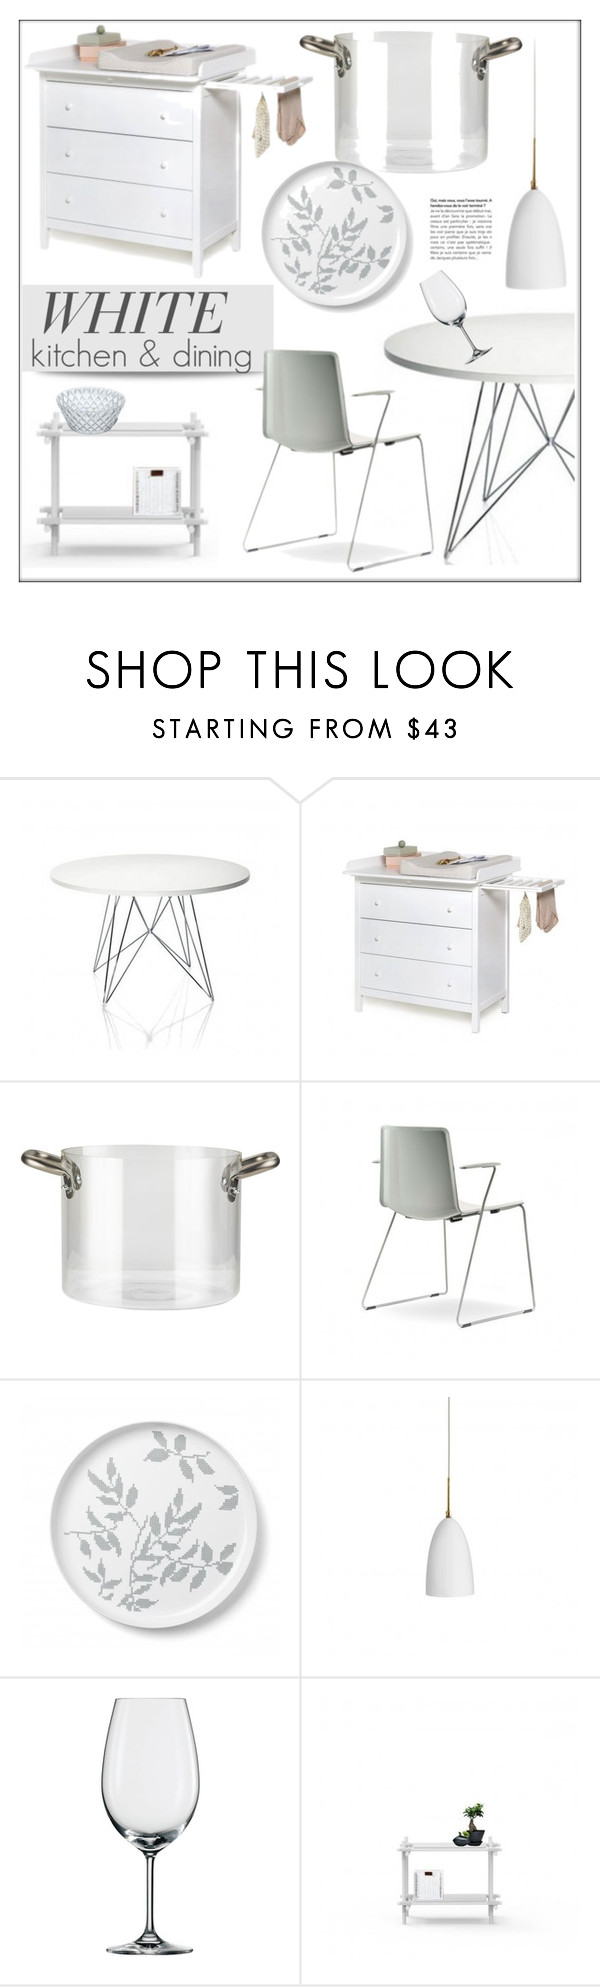 """White Kitchen & Dining"" by lovethesign-eu ❤ liked on Polyvore featuring interior, interiors, interior design, home, home decor, interior decorating, Magis, knIndustrie, Pordamsa and Koziol"